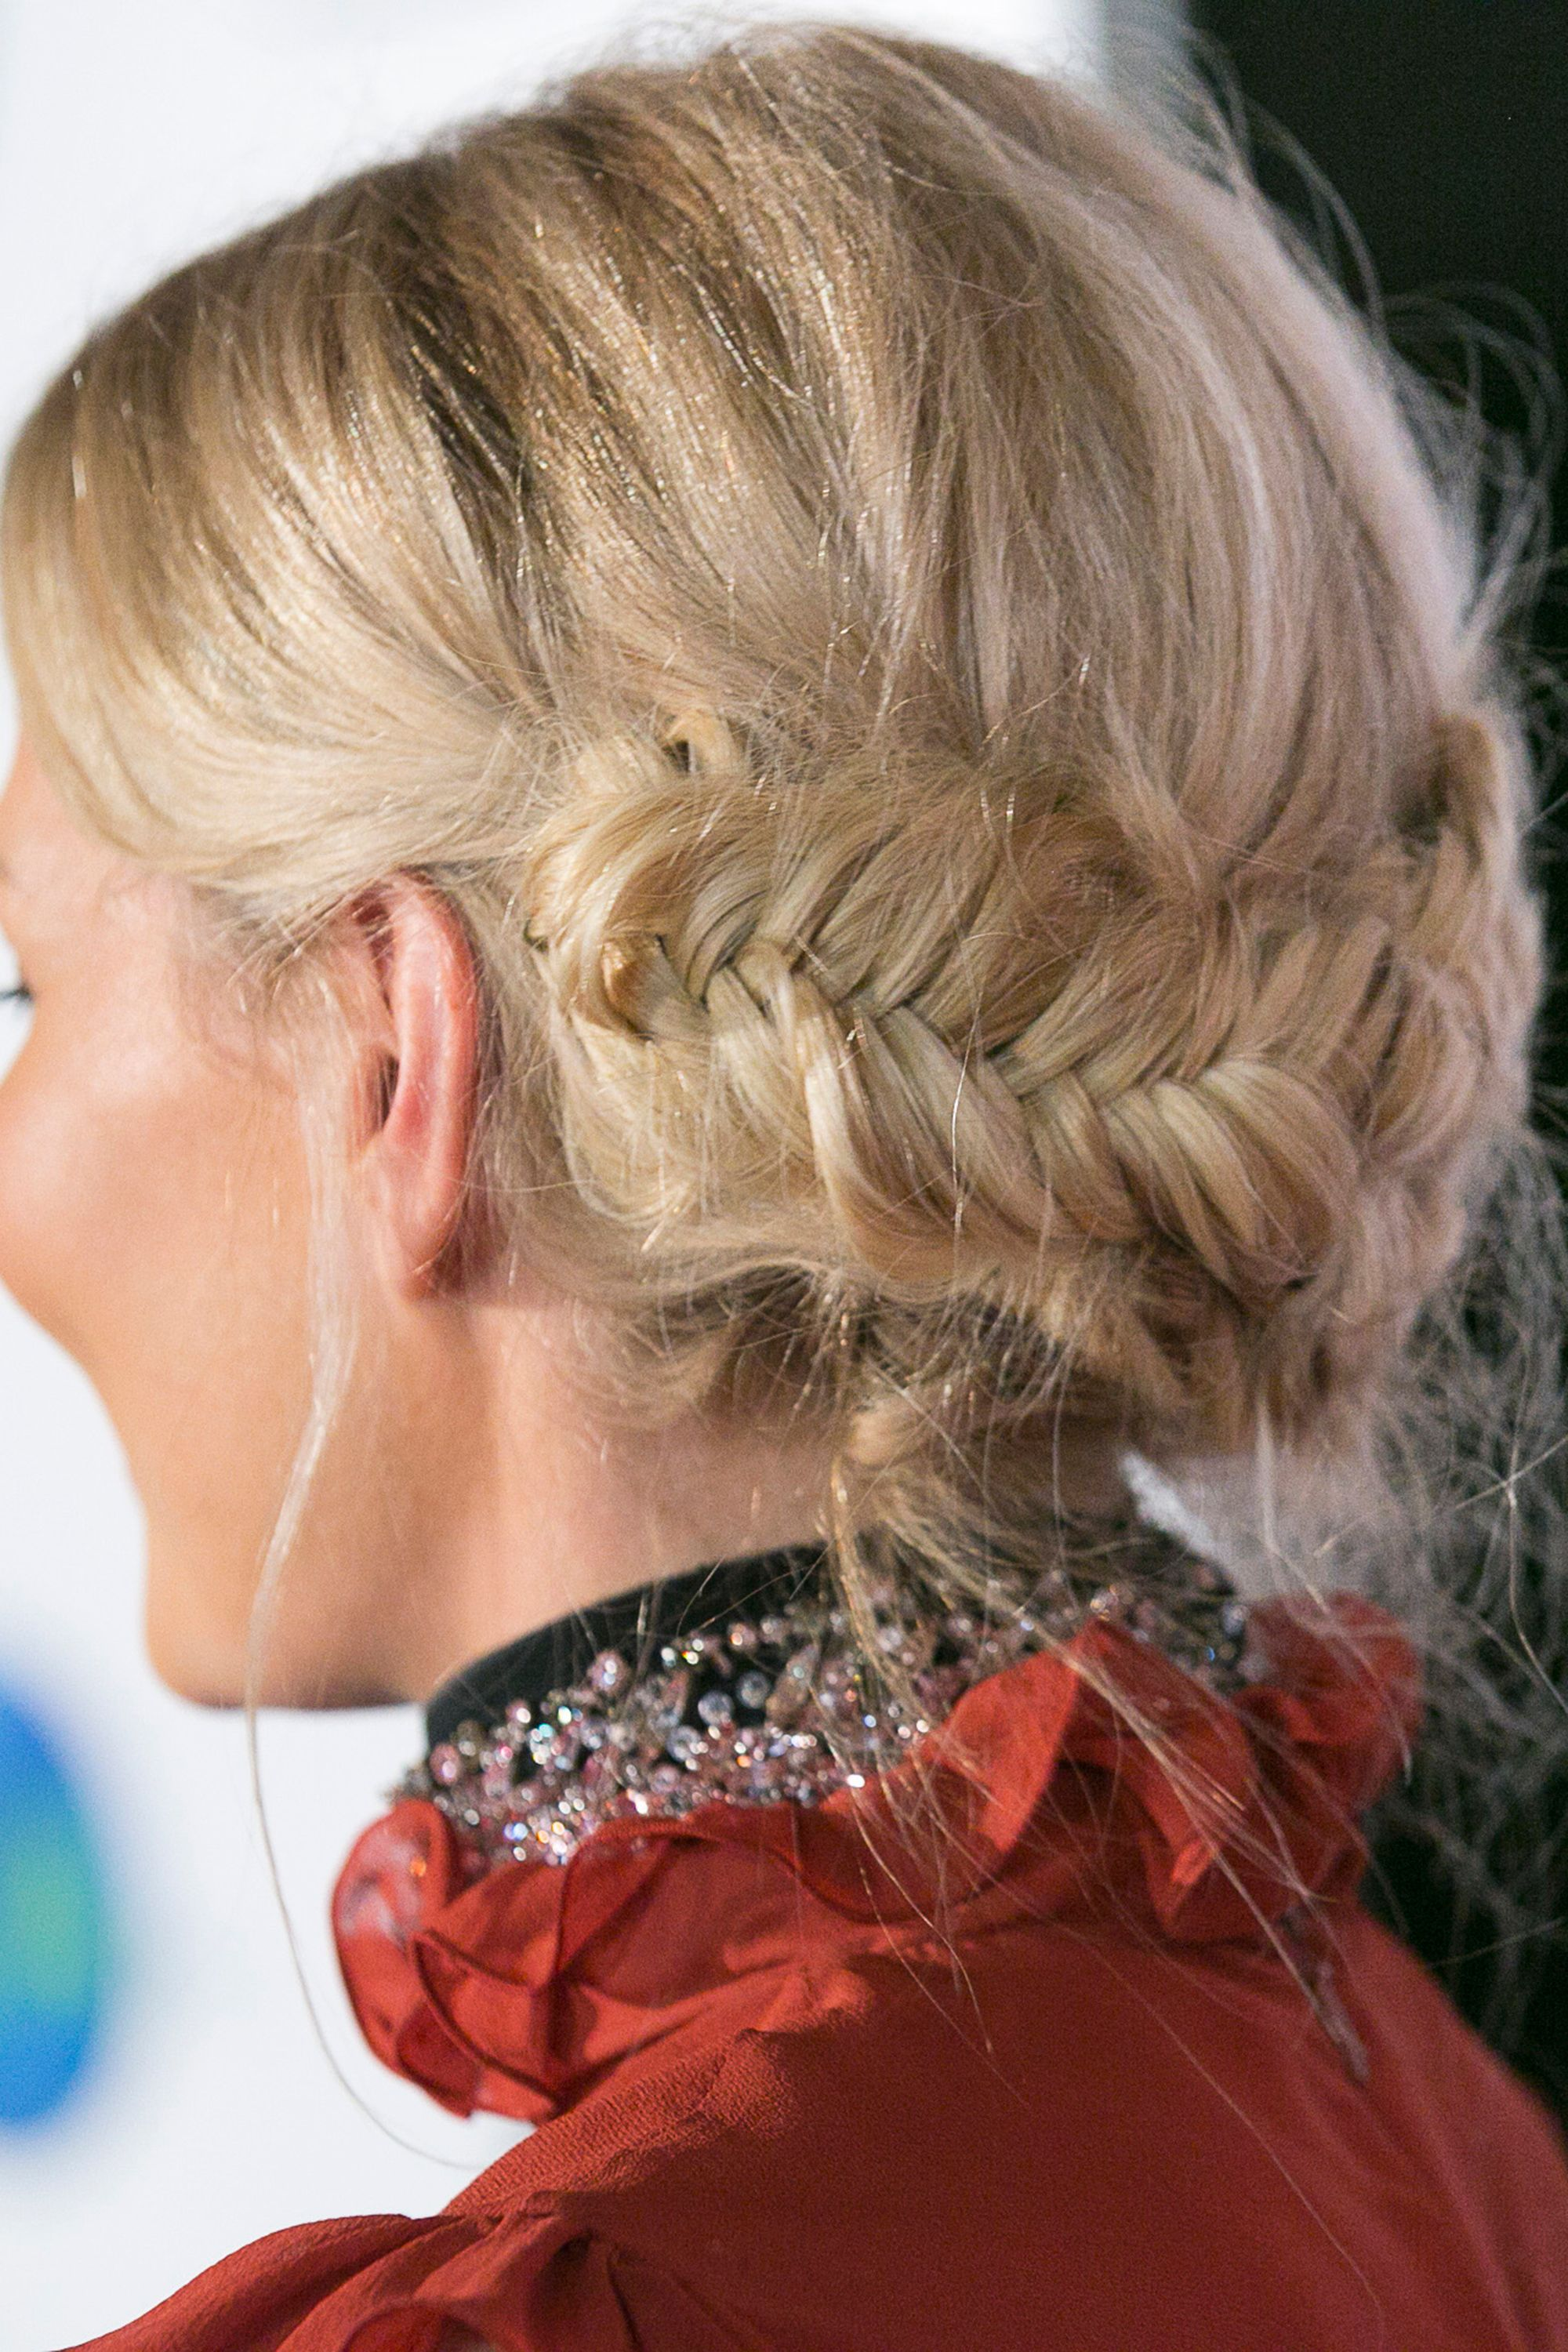 16 Christmas Party Hair Ideas Hairstyle Inspiration For Party Season